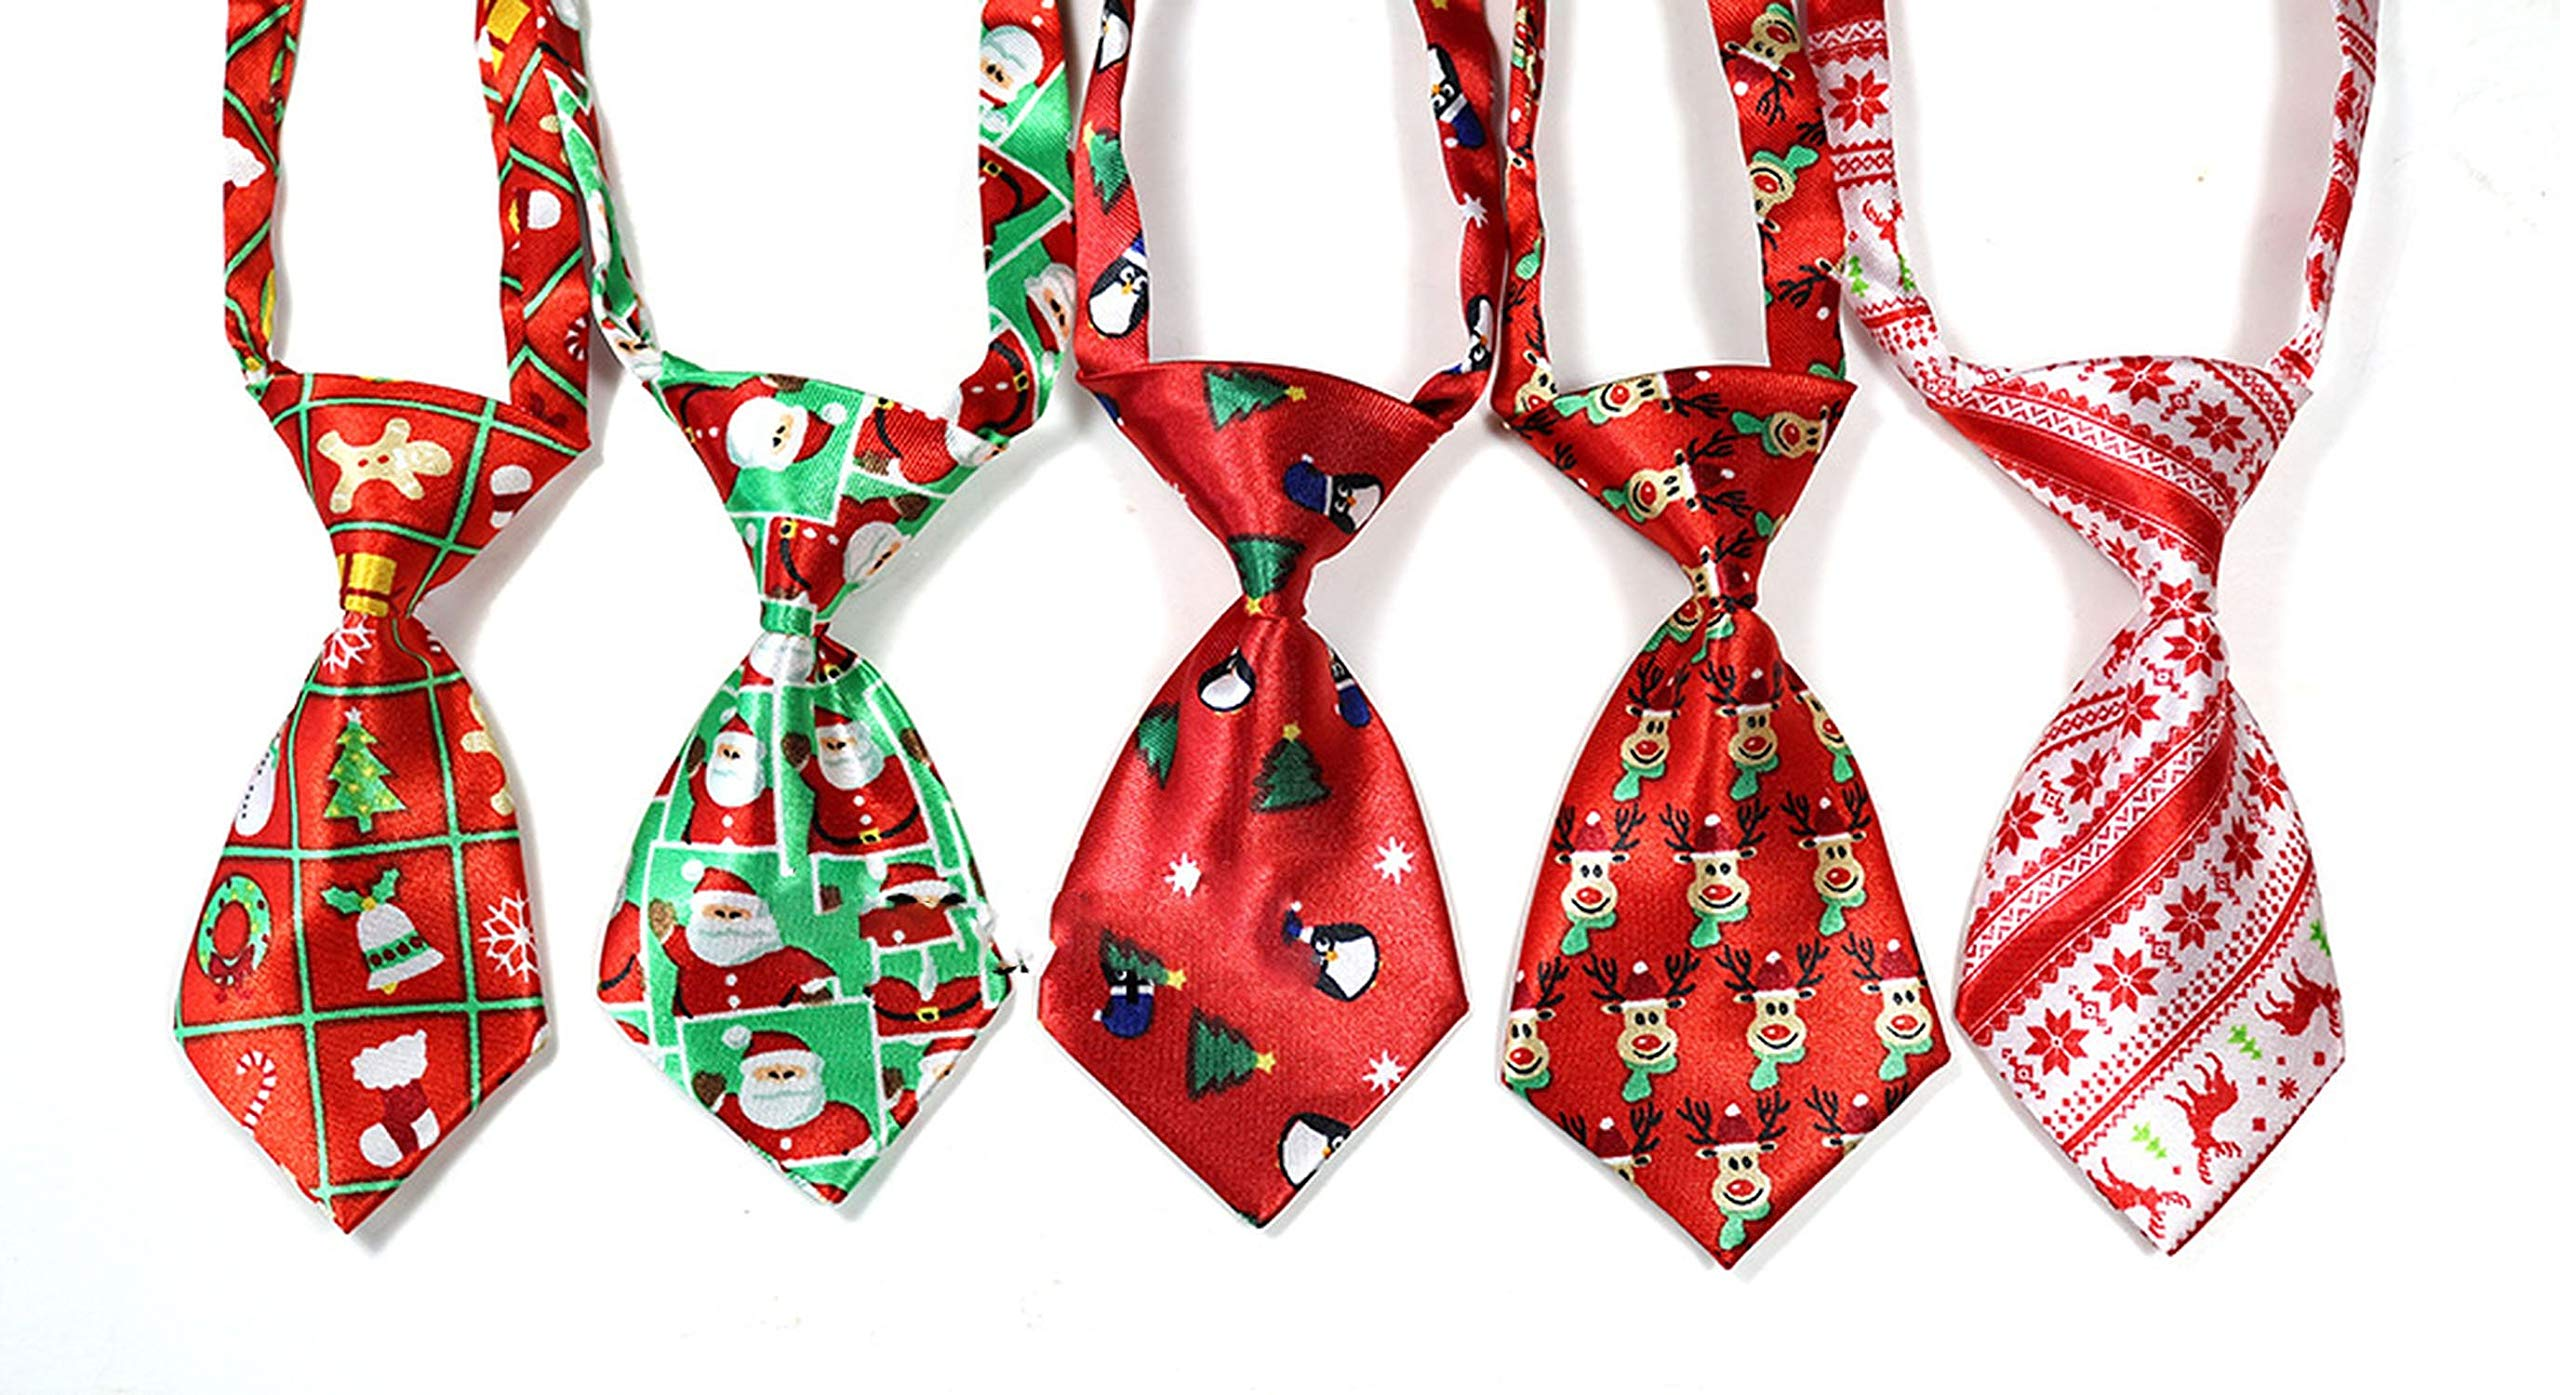 100pcs Christmas Pet Supplies Pet Dog Cat Xmas Neckties Bowties Santa Deer Pet Dog Grooming Accessories Small-Middle Dog Ties,Mix Colour